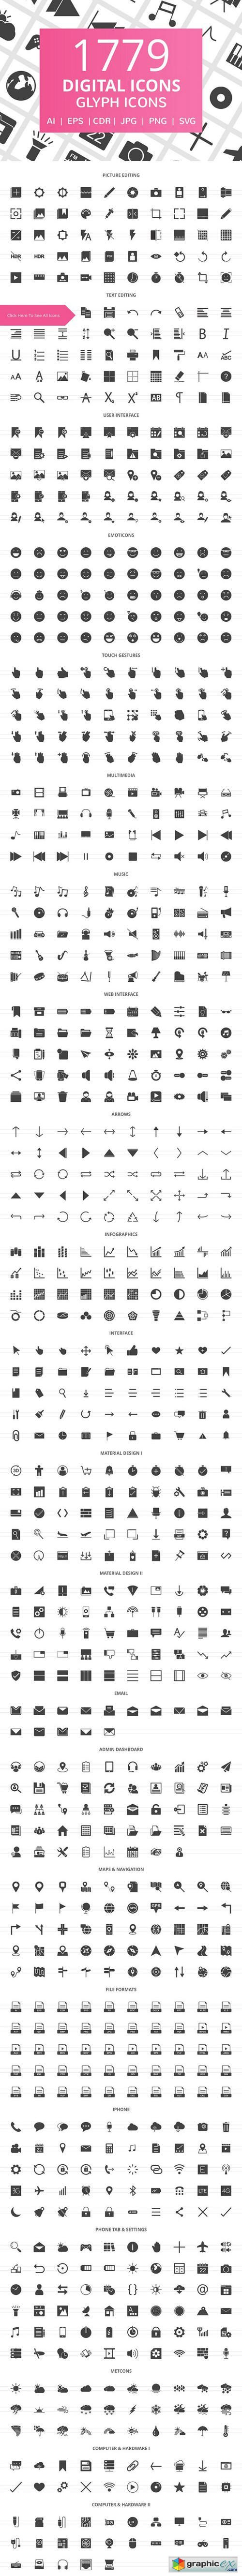 1779 Digital Glyph Icons